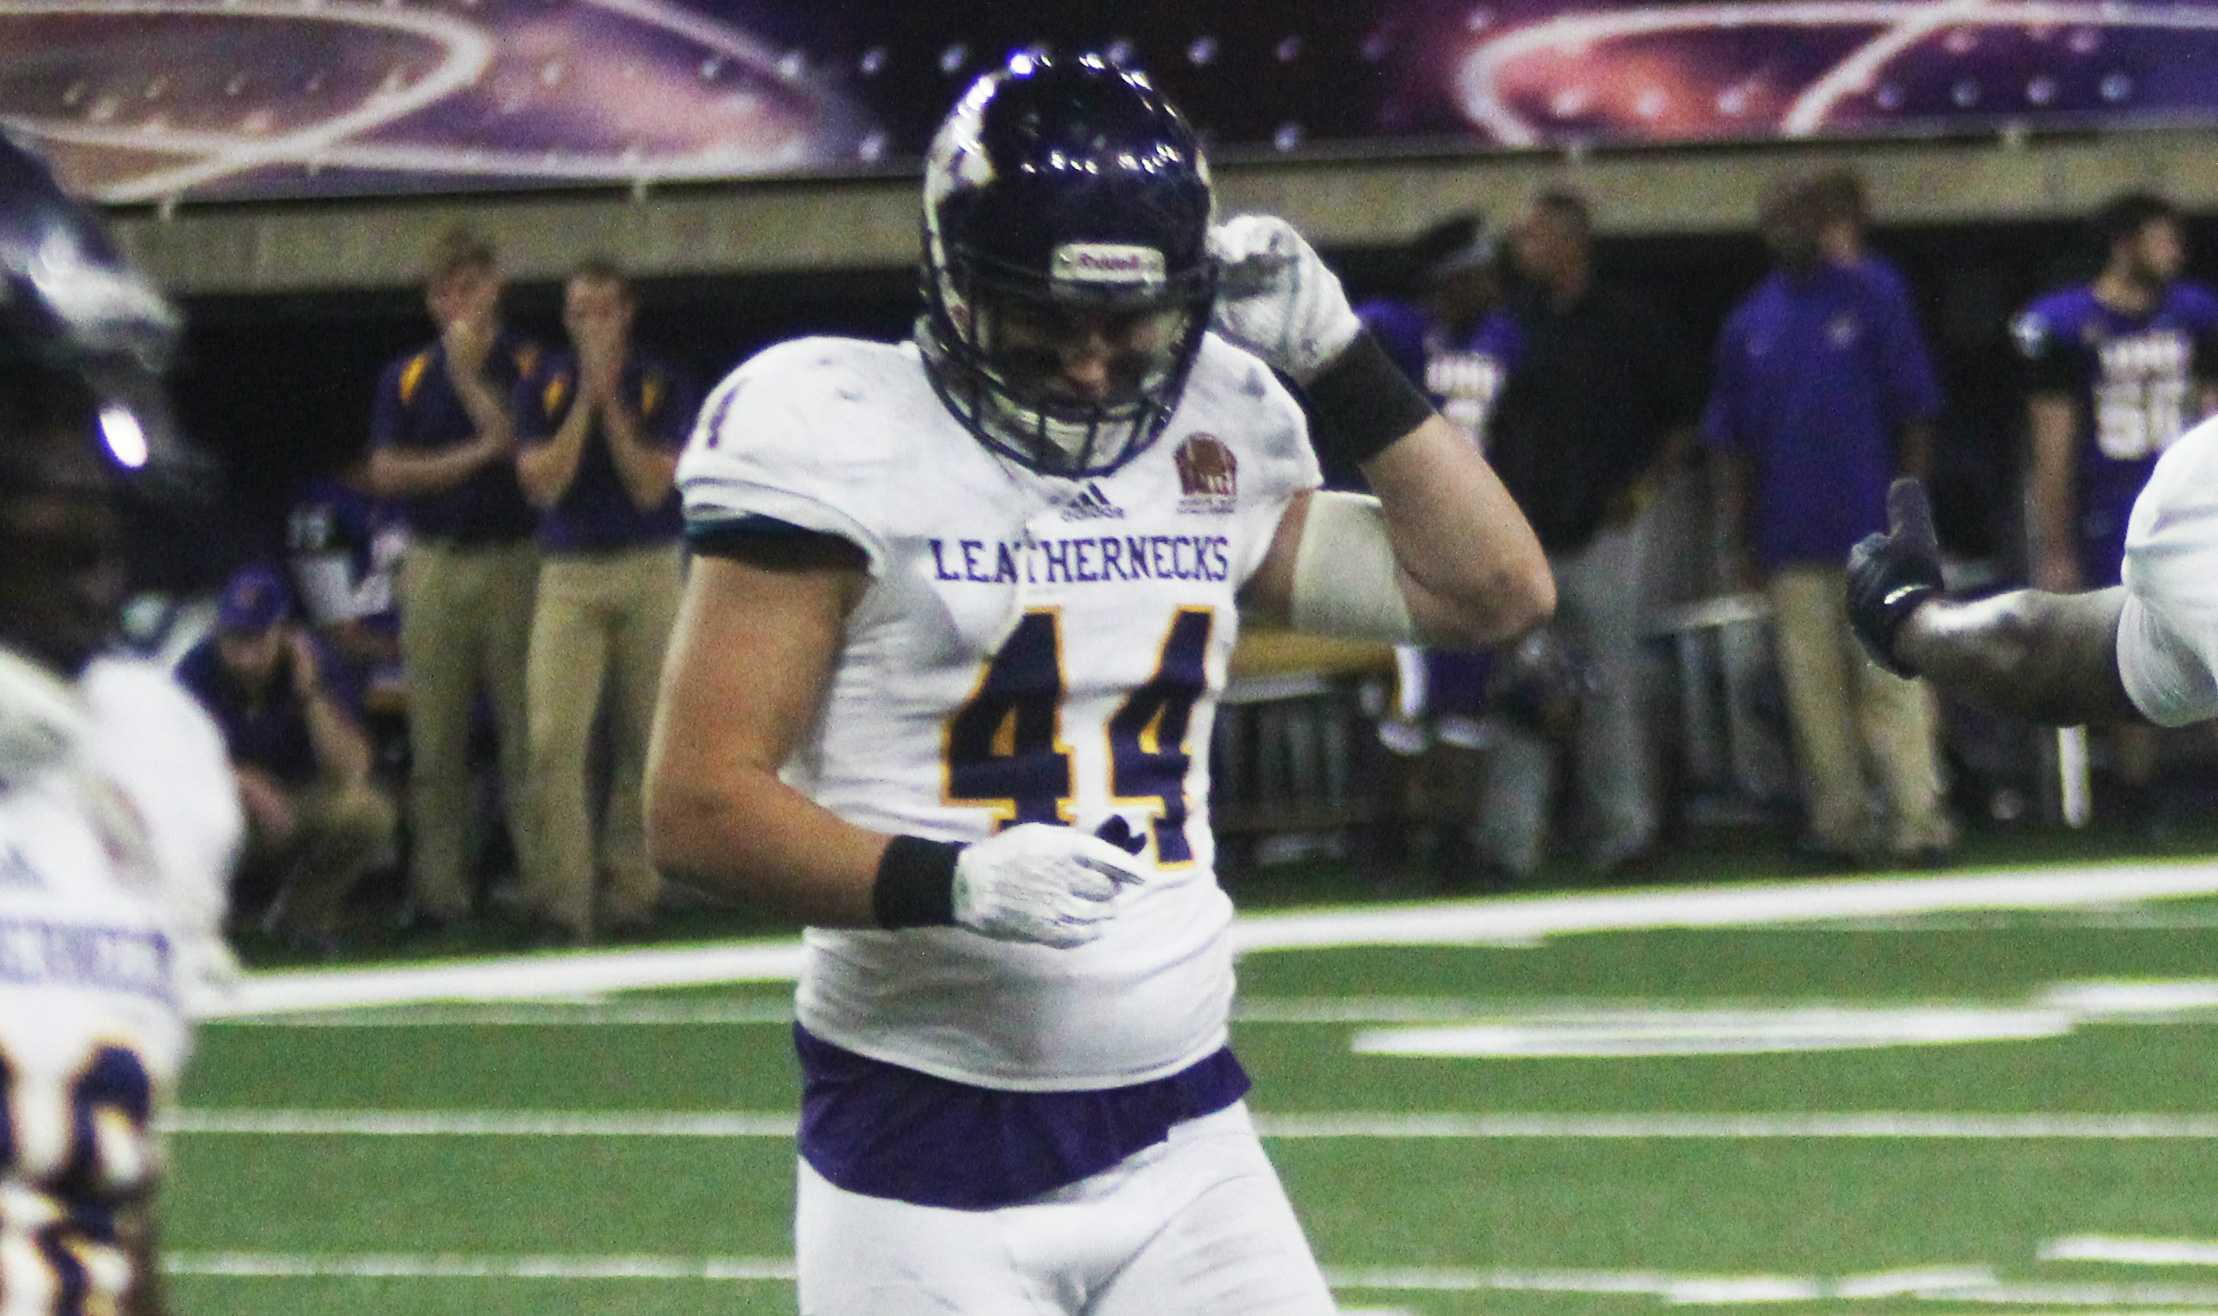 Brett Taylor was named the MVFC Defensive Player of the Week after the Leatherencks defeated the Northern Iowa Panthers. Taylor has recorded 67 tackles this year, an interception return for a touchdown and three fumble recoveries, including one for a touchdown.